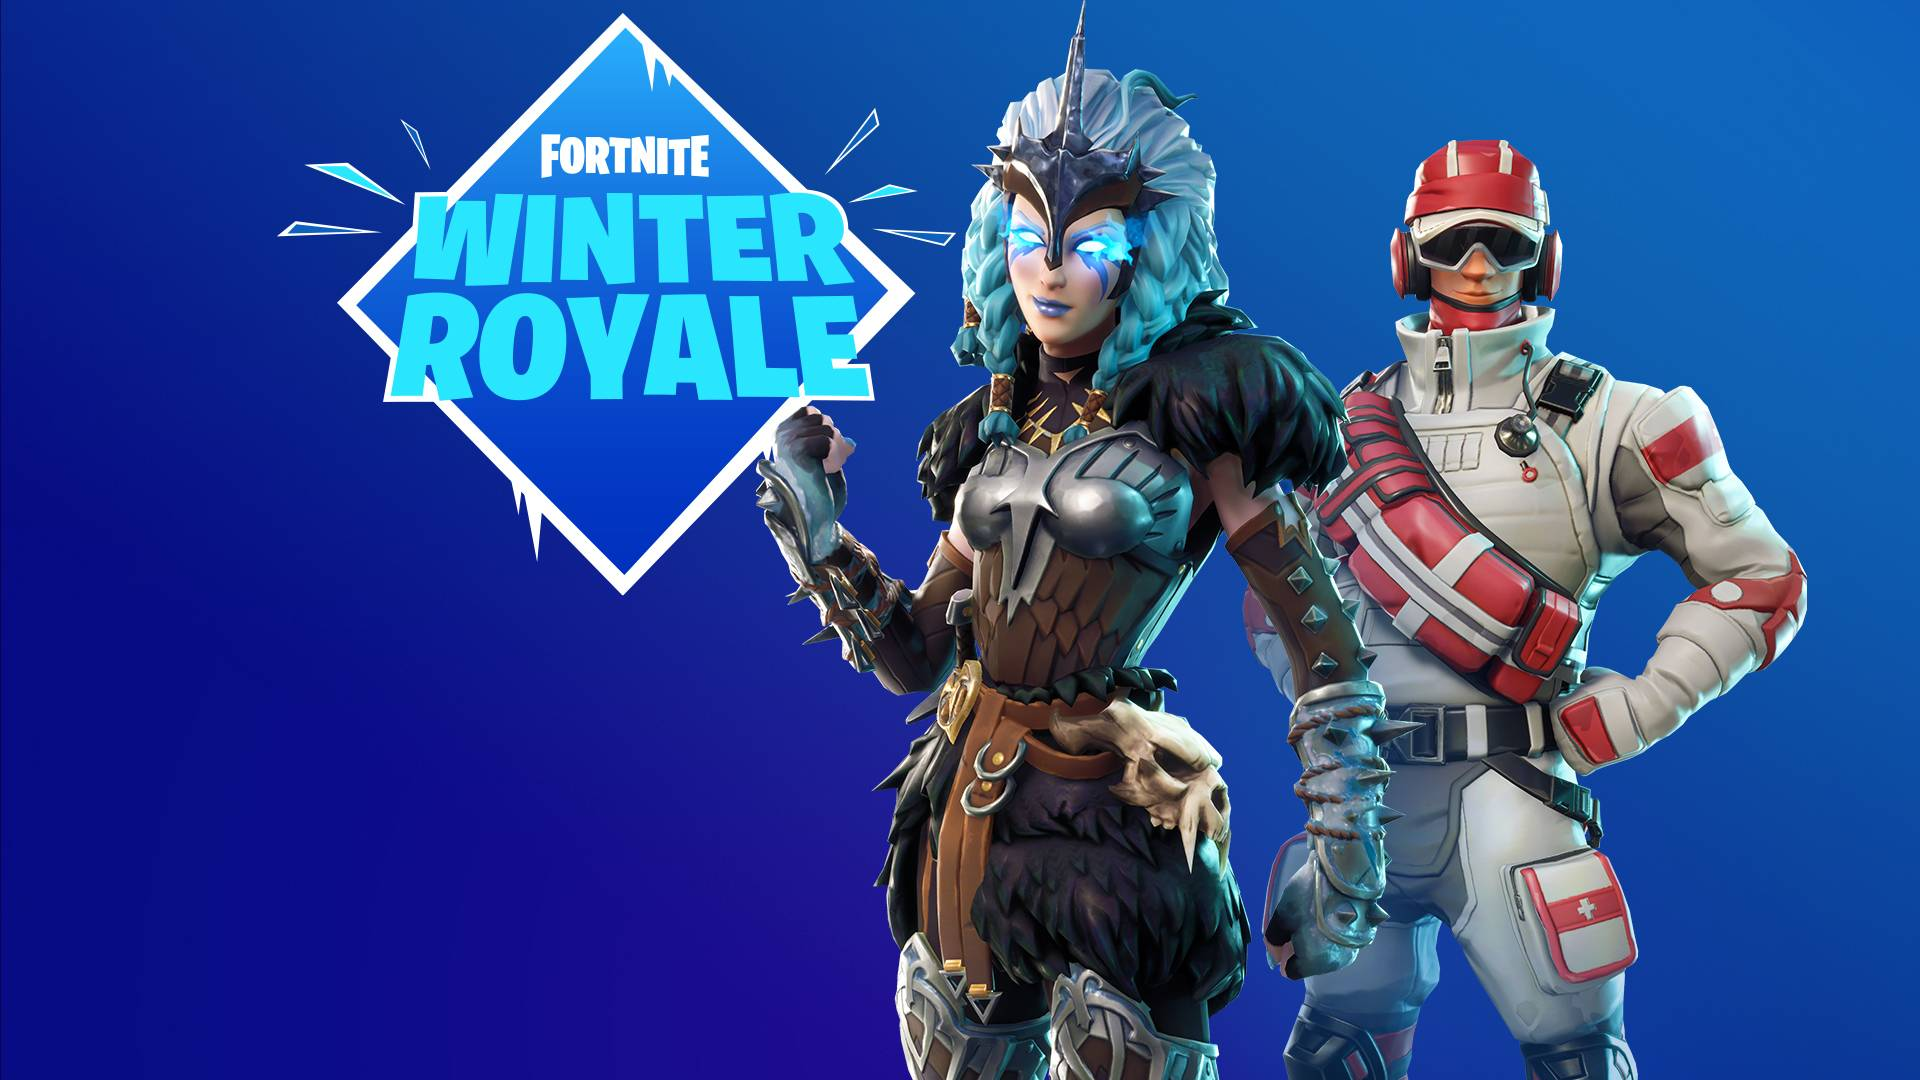 Tournoi Fortnite Winter Royale